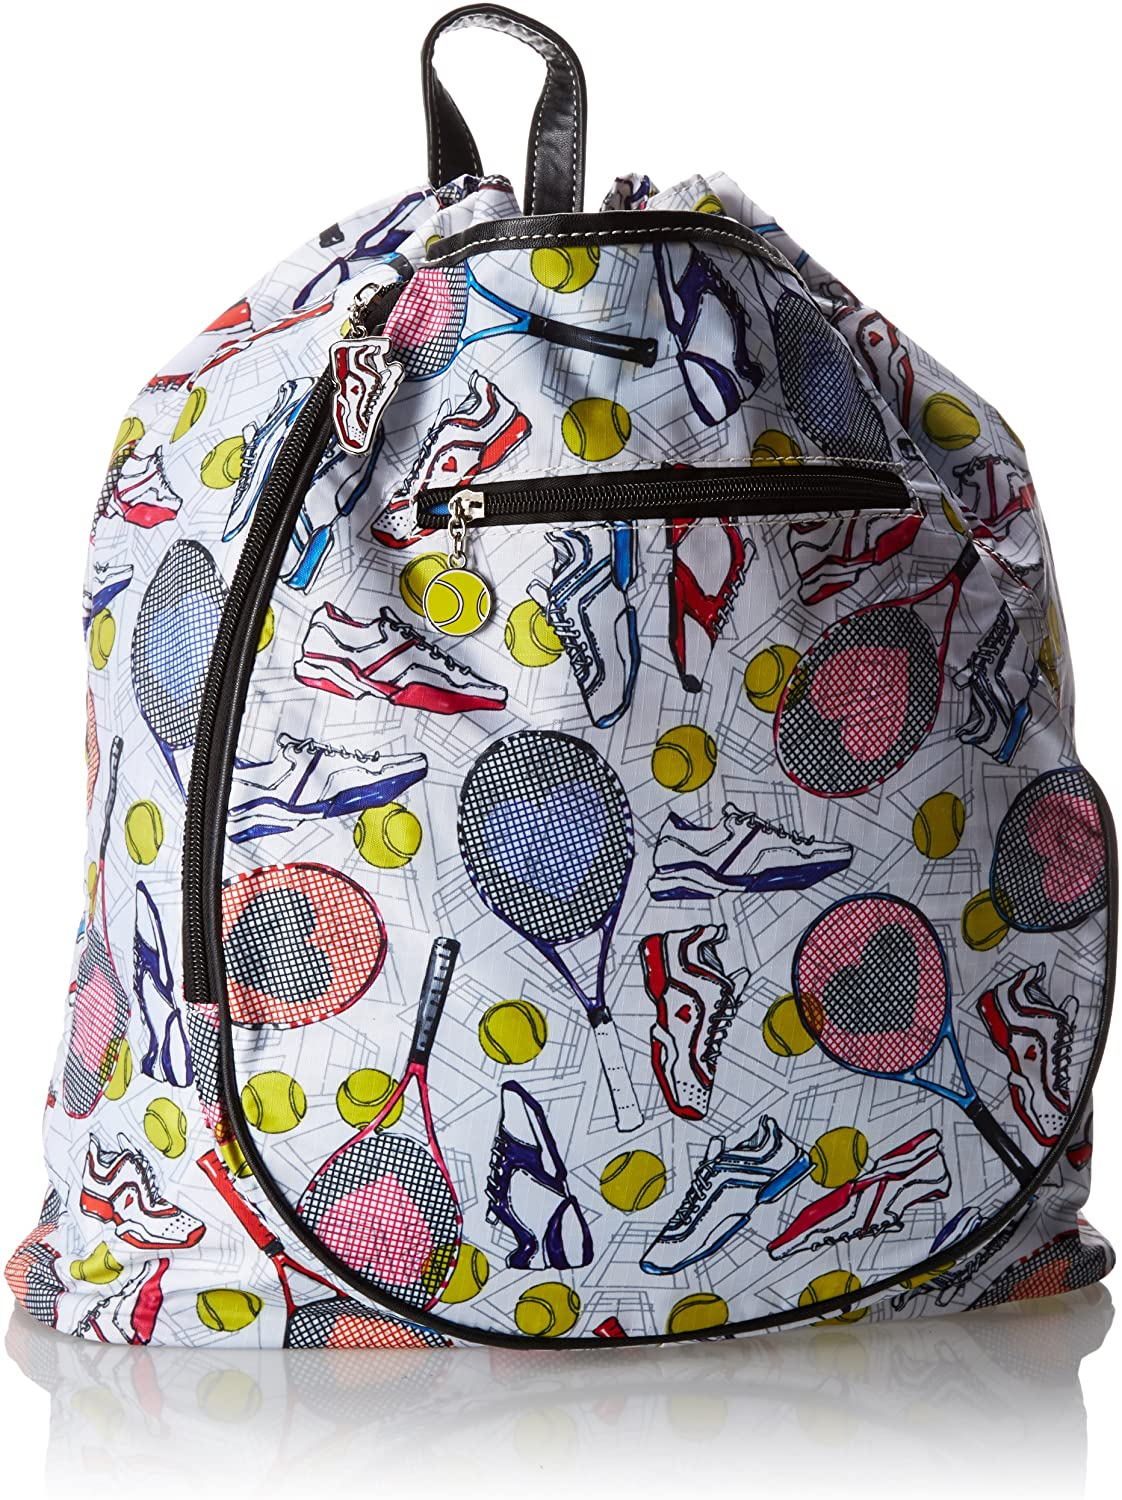 Sydney Love Tennis Backpack Carry On